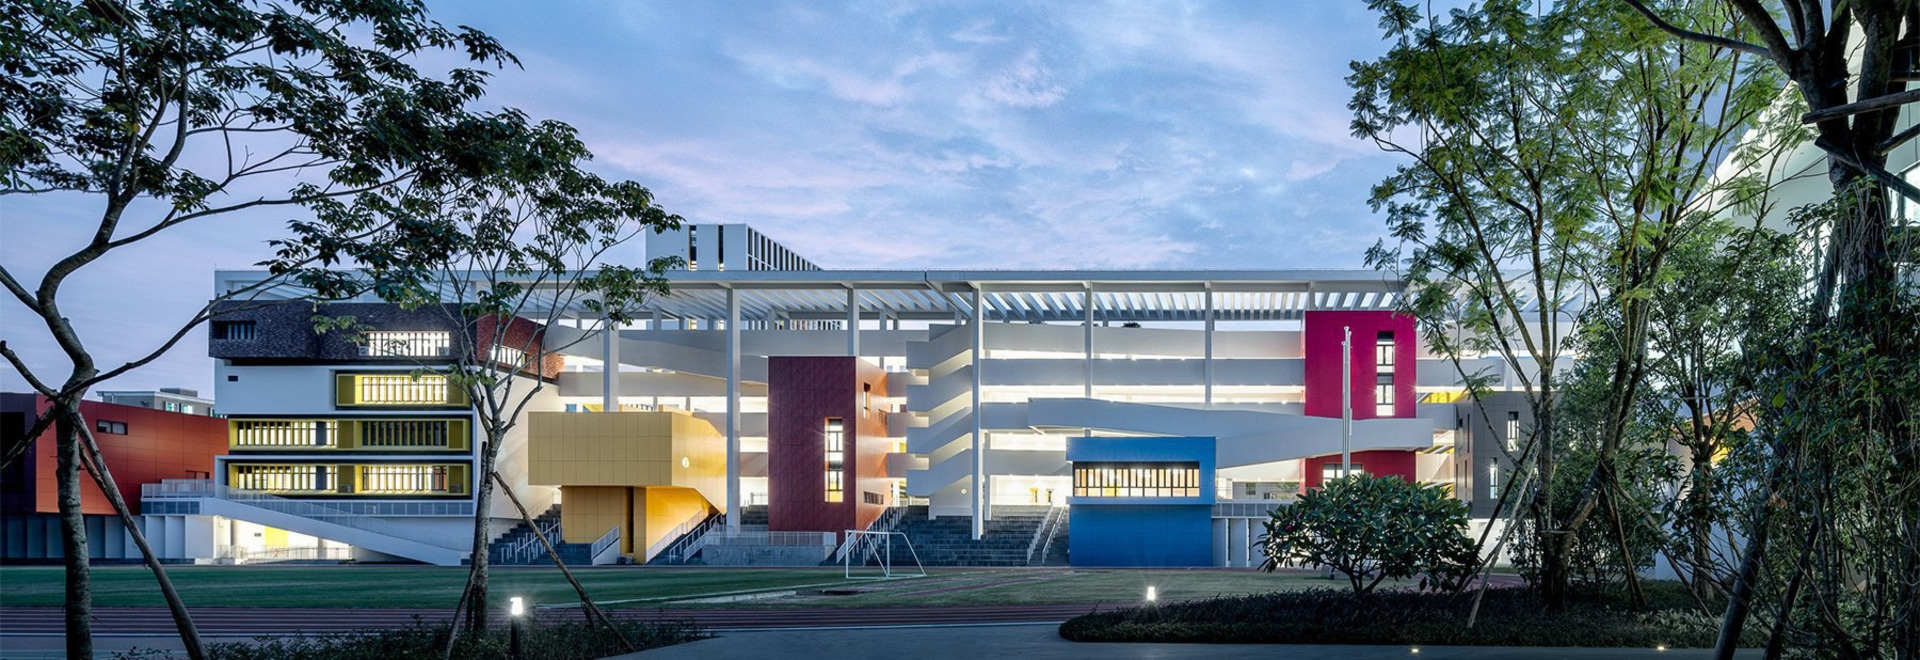 zhubo-aao and H design bring colorful outdoor learning to school in shenzhen